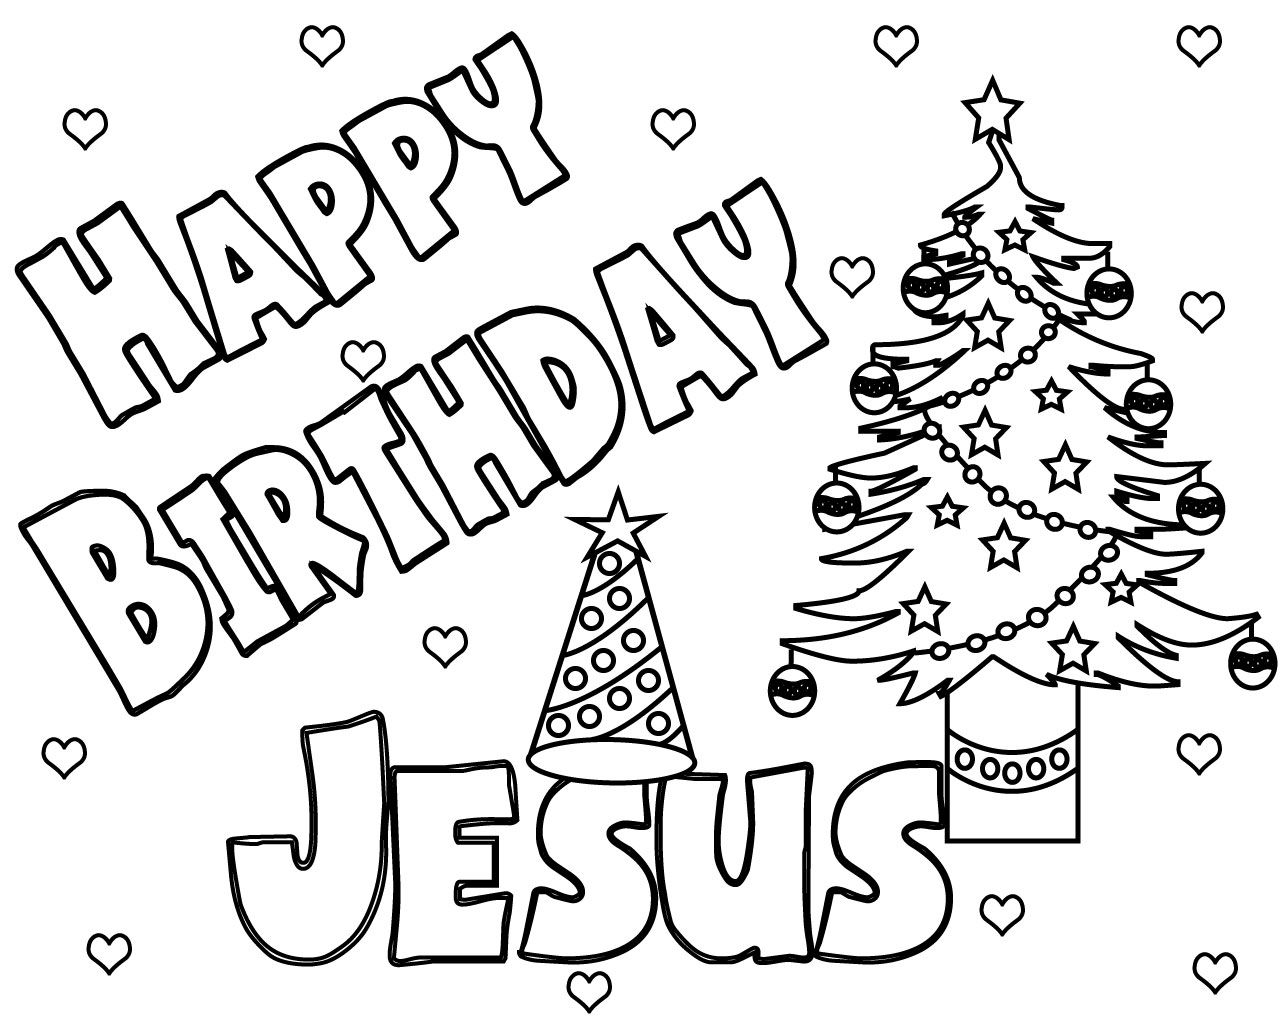 Happy Birthday Jesus Coloring Pages Jesus Birthday is